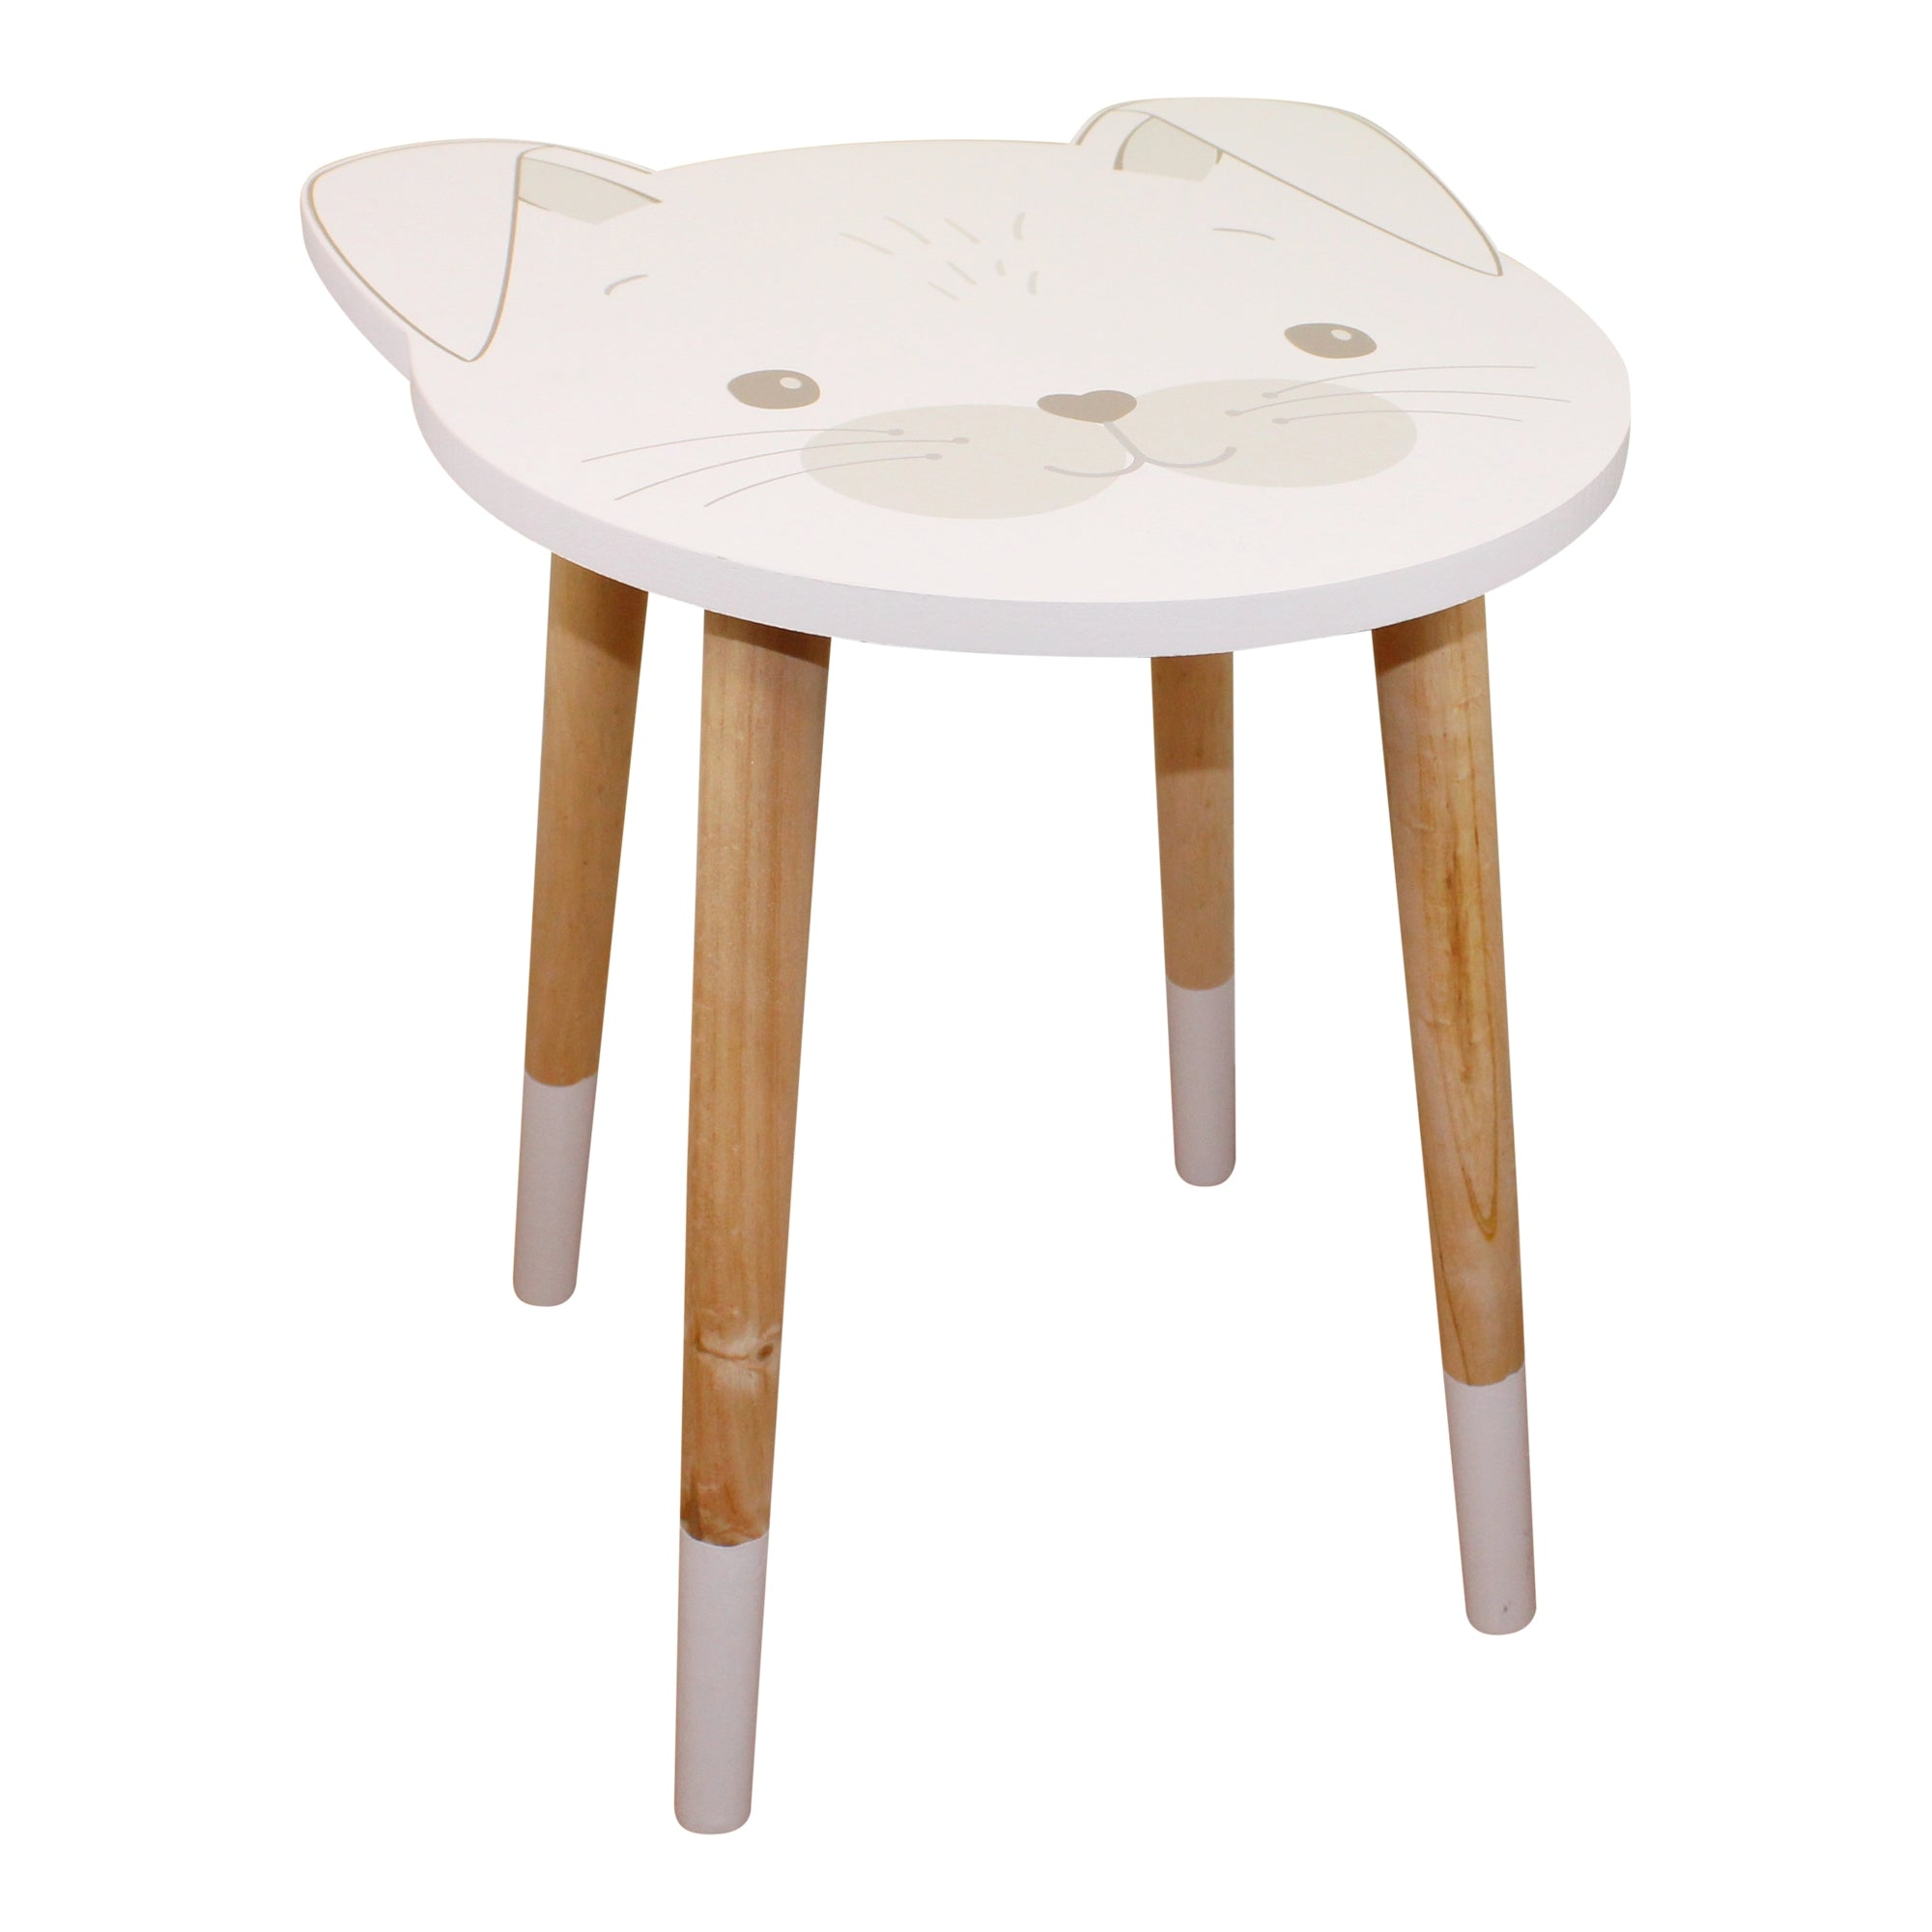 Baby Bear Wooden Side Table, Rabbit Design, Furniture by Low Cost Gifts